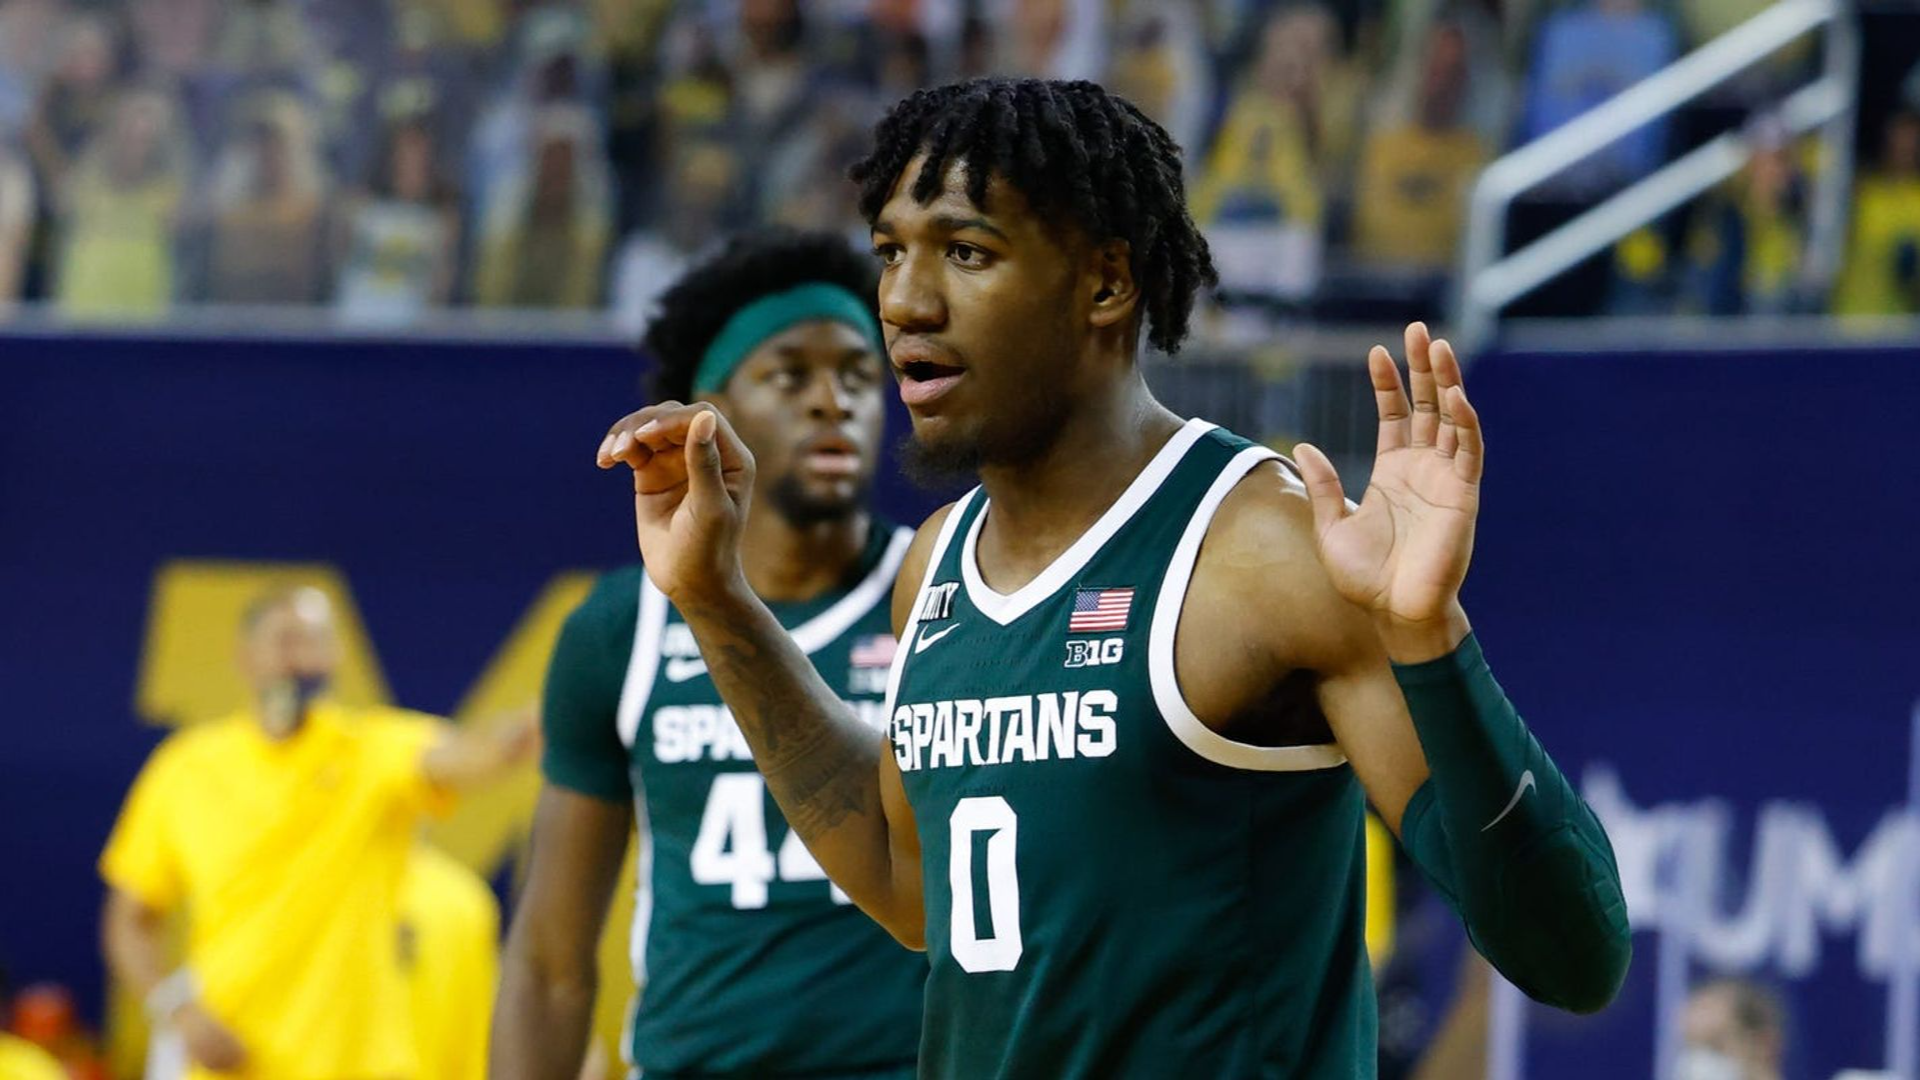 First Four Offers Great Bankroll-Building Opportunities to Open March Madness